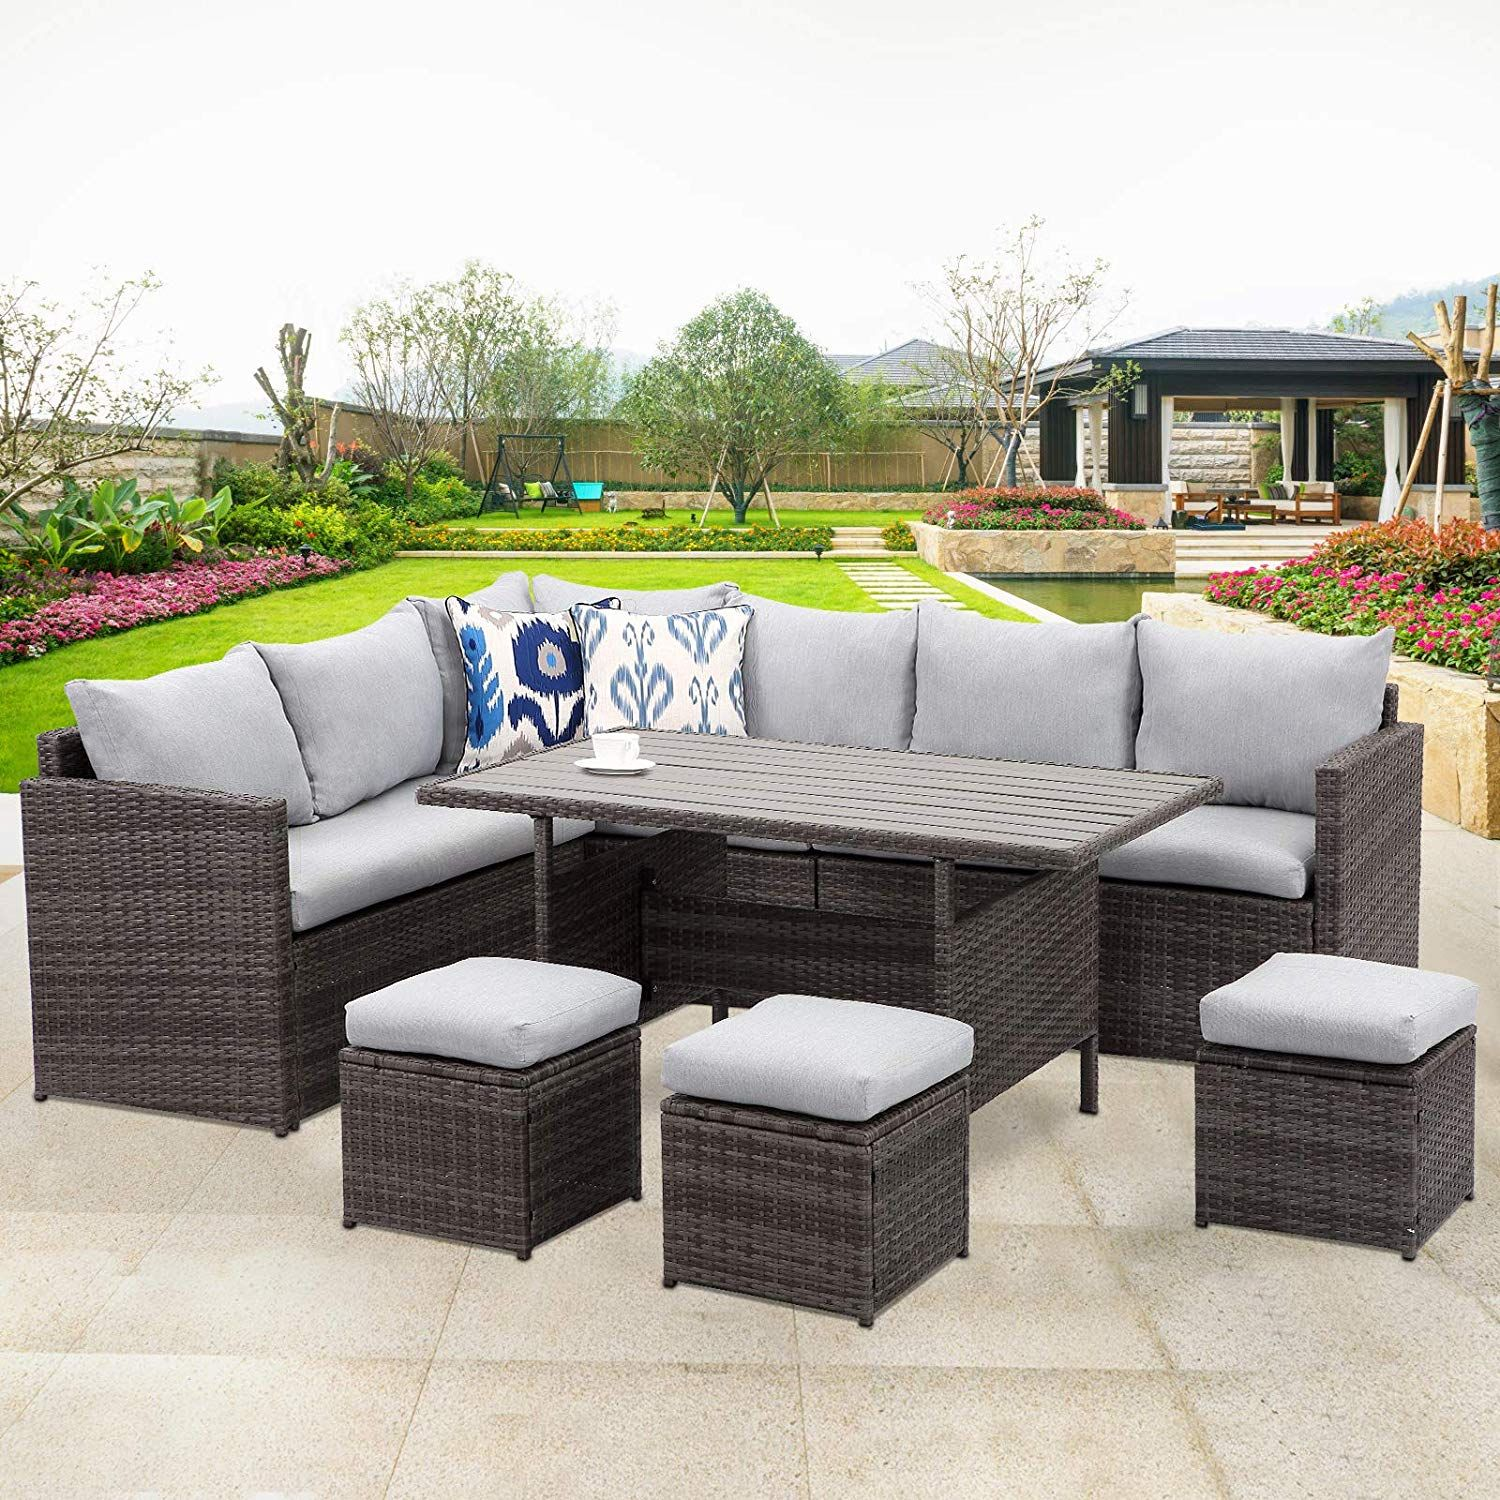 Outdoor Patio Dining Set Couch Dining Table Comfortable Outdoor